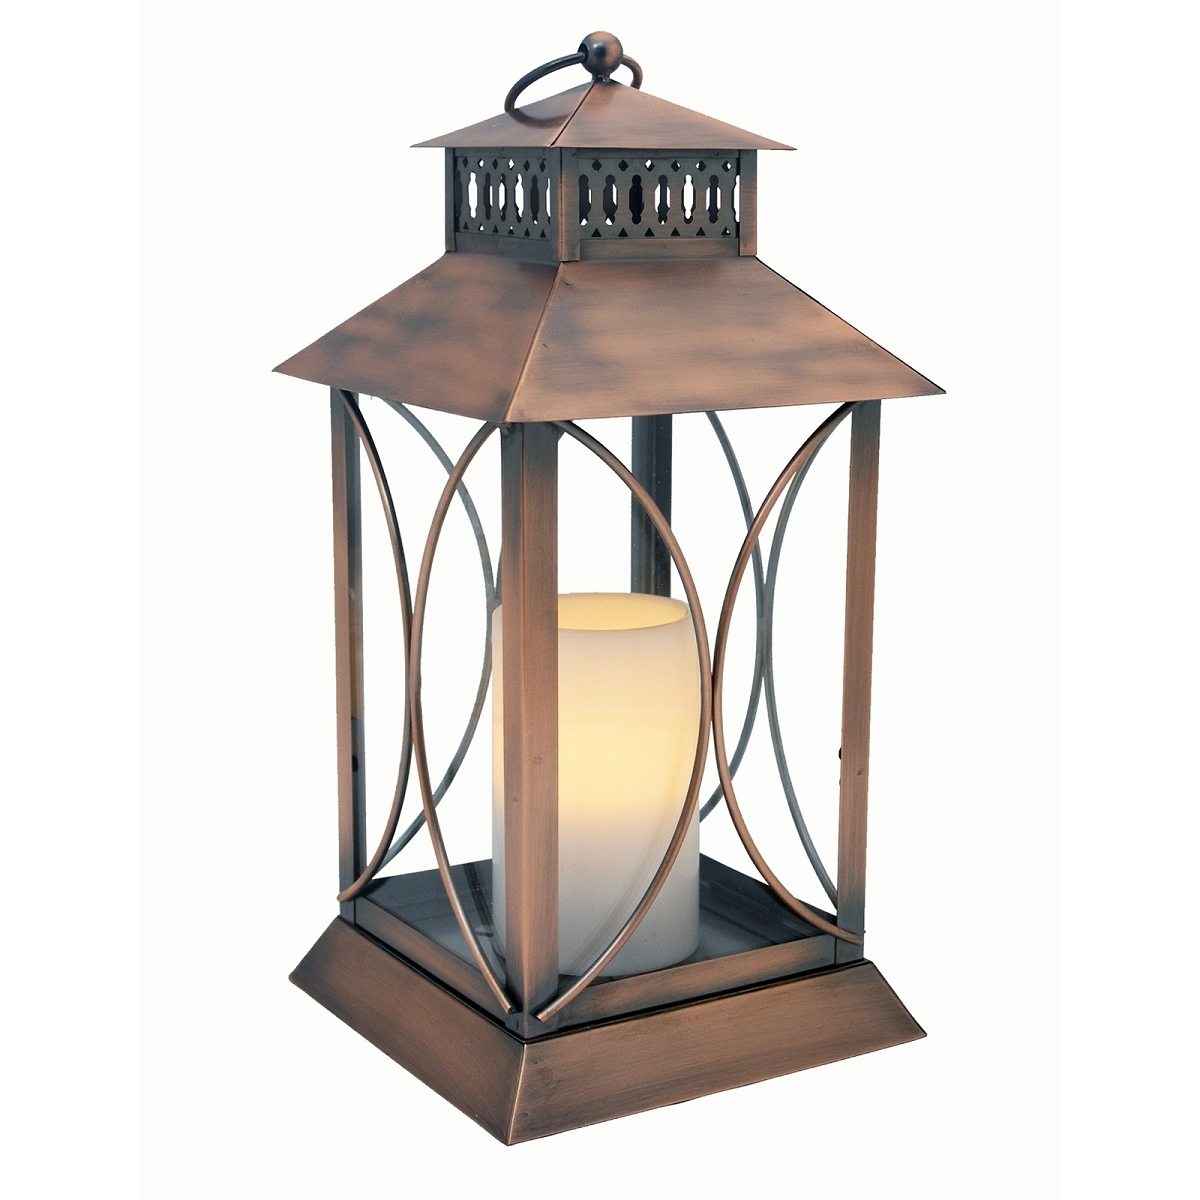 Outdoor Lanterns With Timers Pertaining To Most Current Neuporte Flameless Candle Lantern With Timer Indoor Outdoor (View 8 of 20)